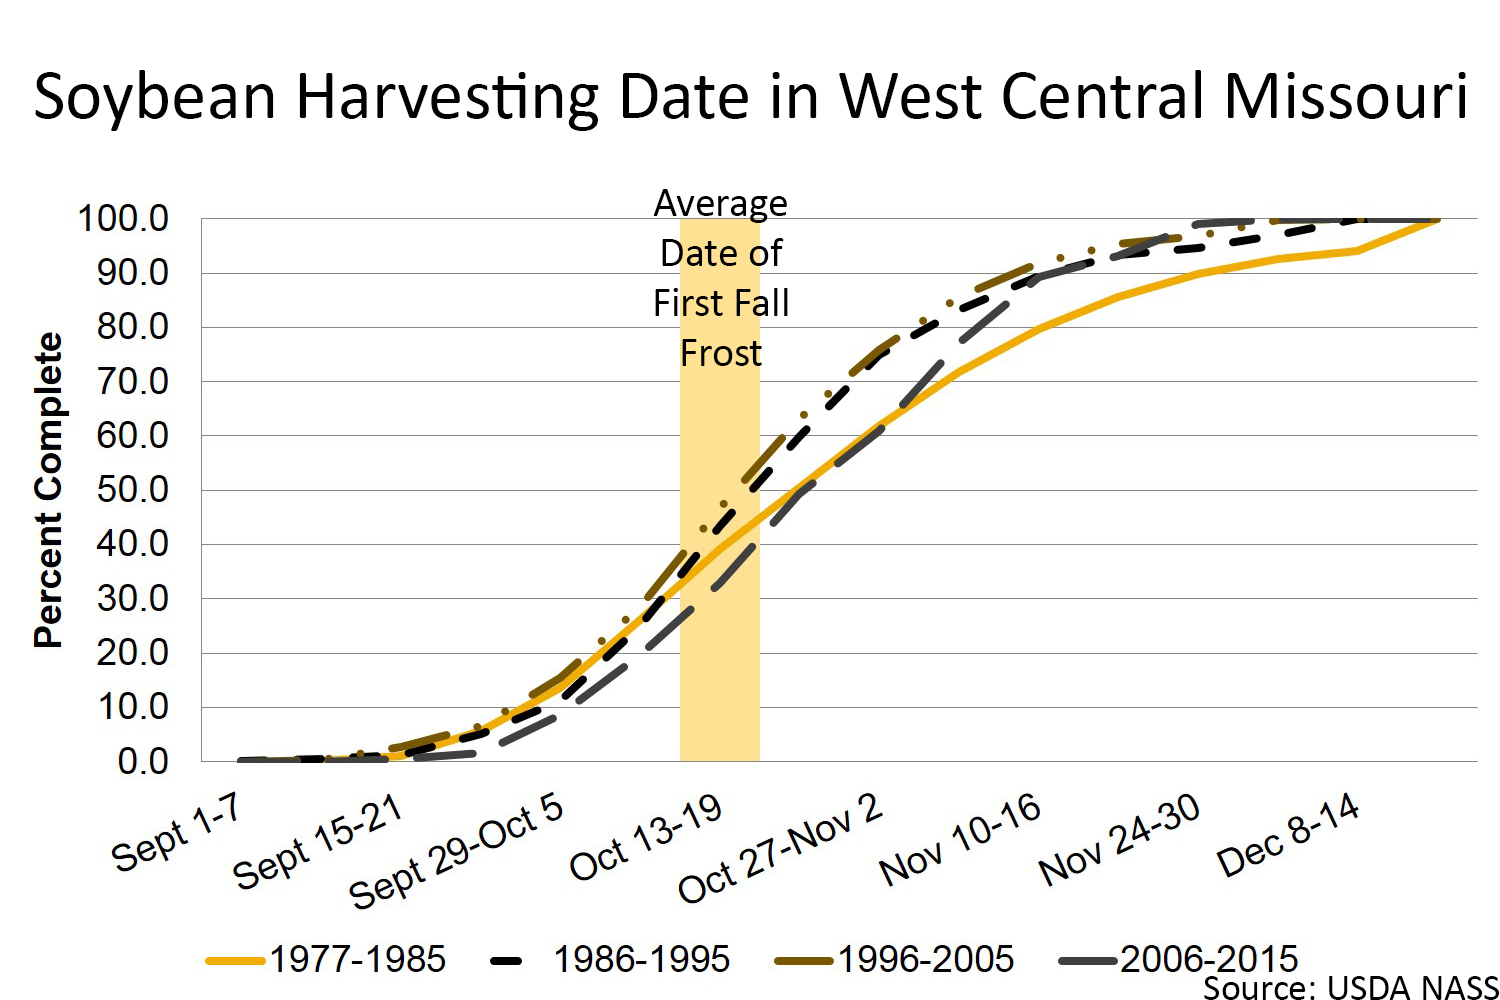 Soybean harvesting date in west central Missouri chart